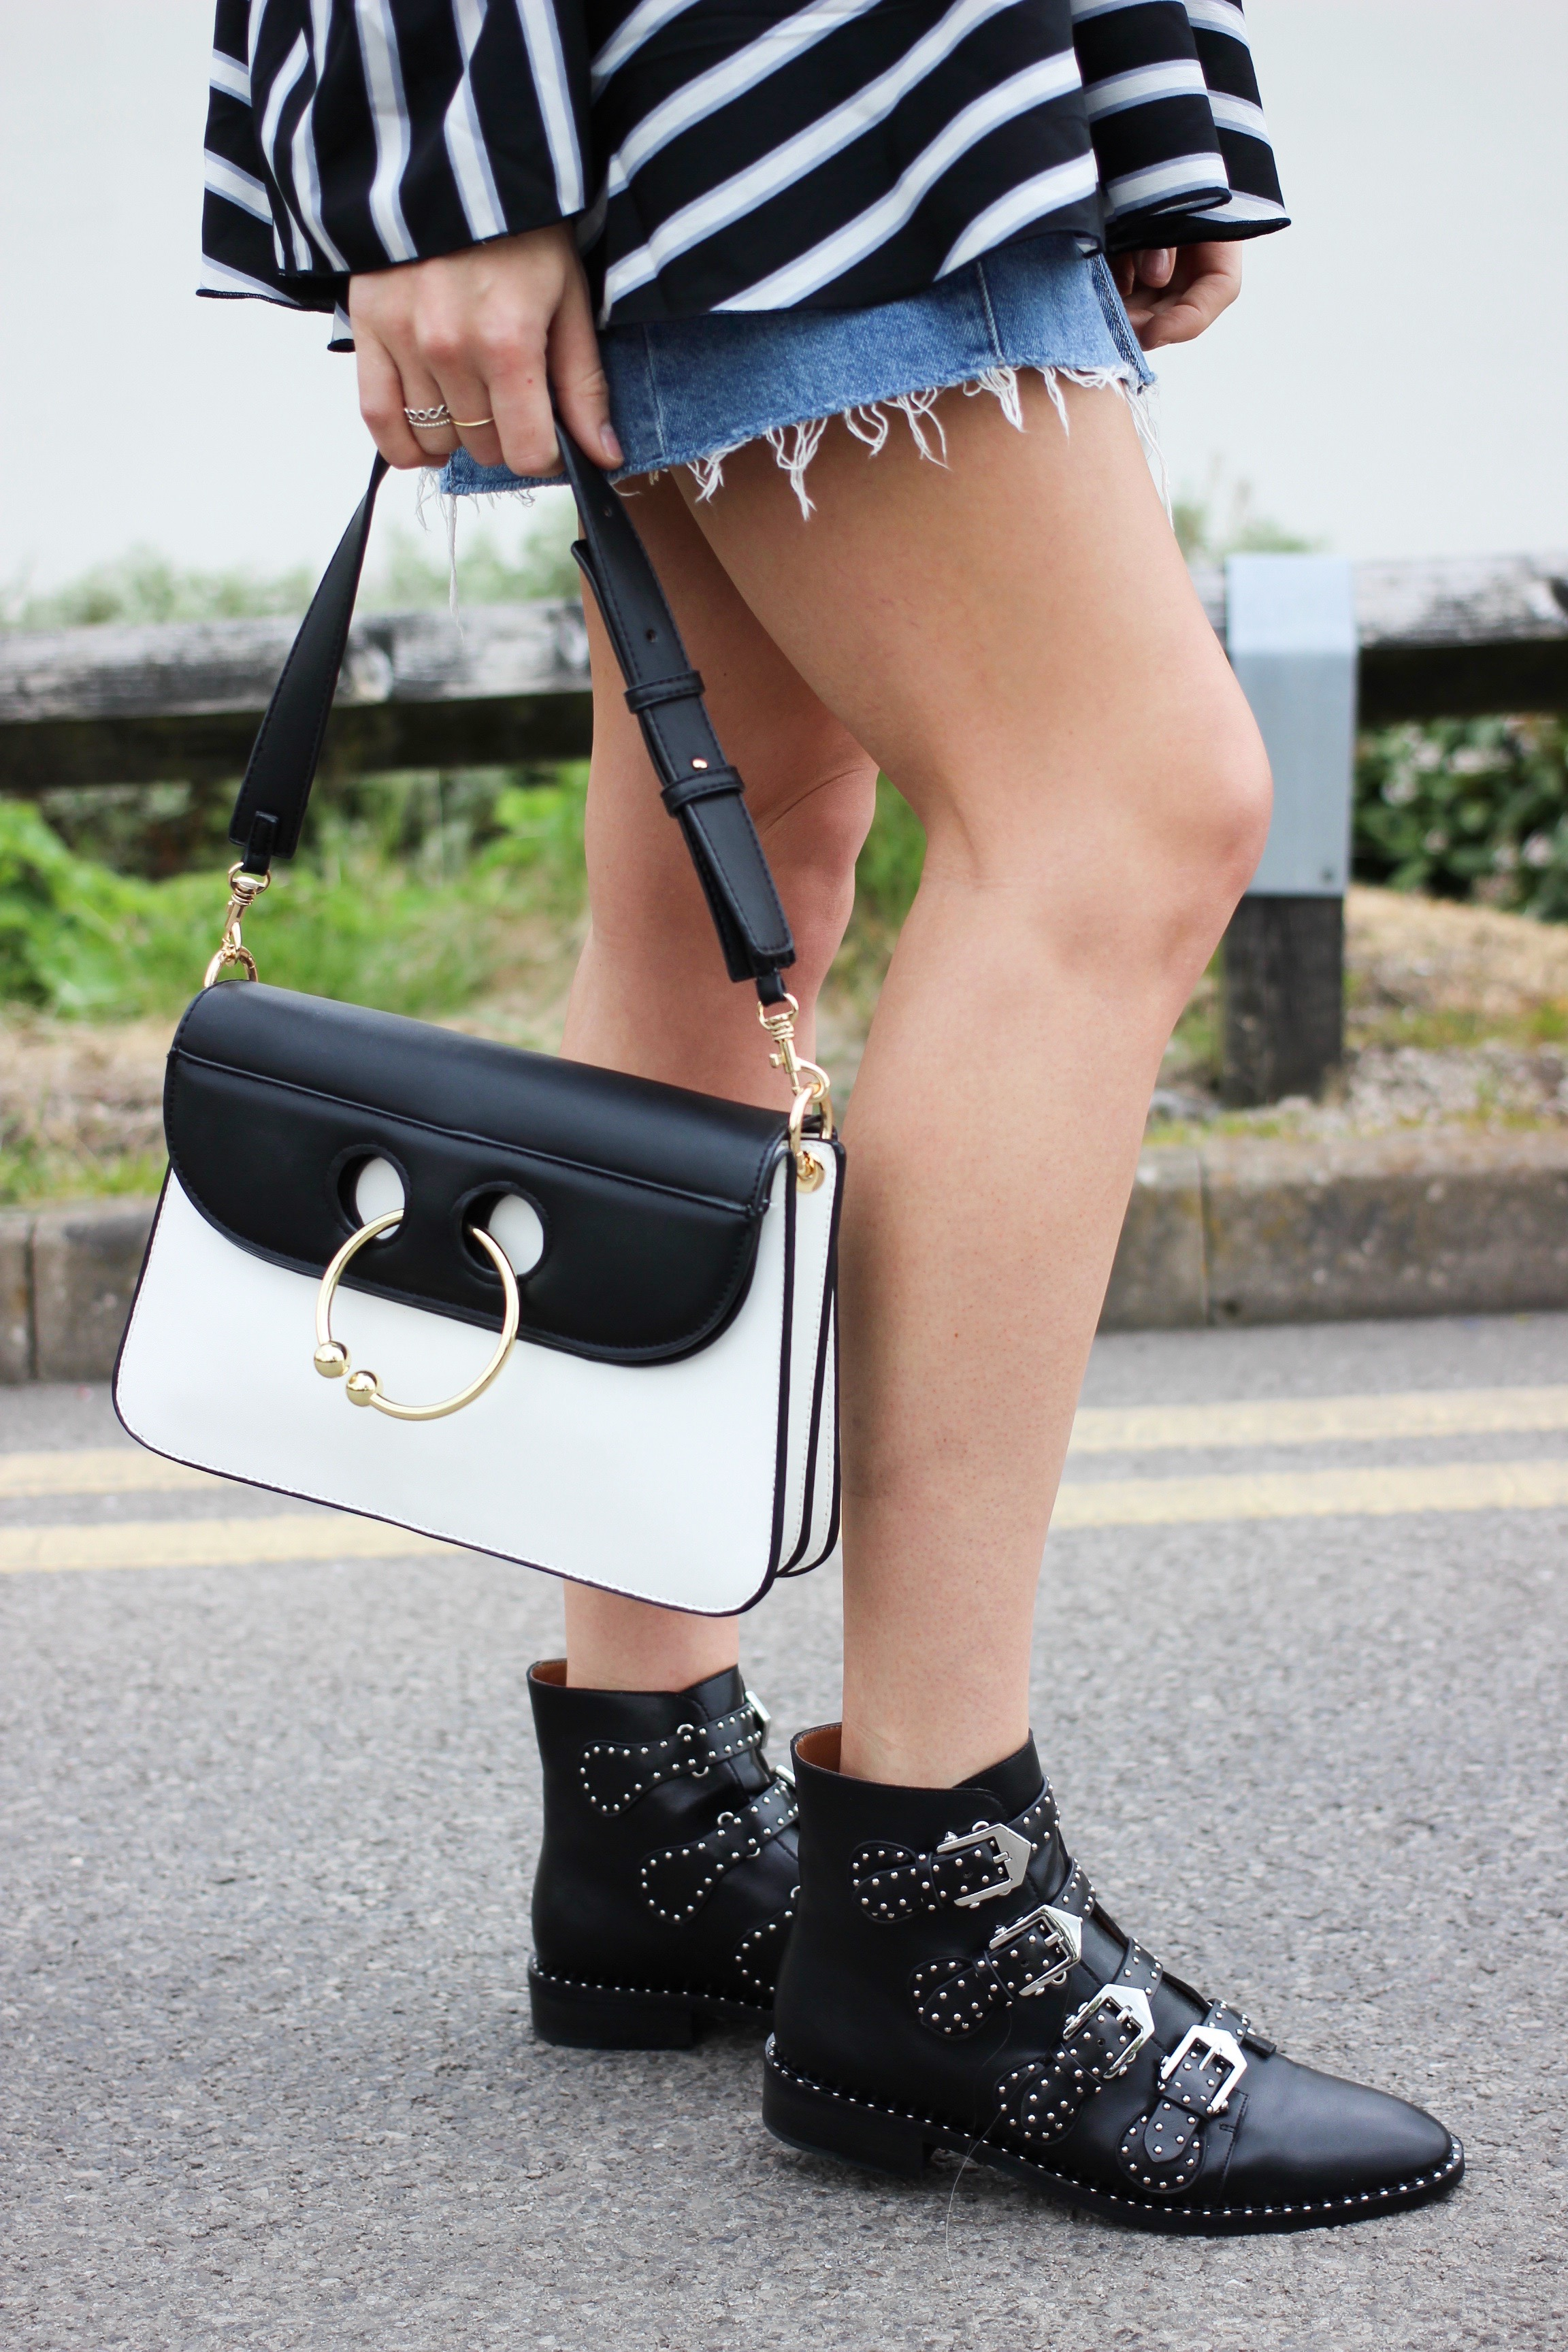 Givenchy Studded Buckle Boot Dupes and J W Anderson Pierce Bag Medium Dupe Street Style Outfit Inspiration